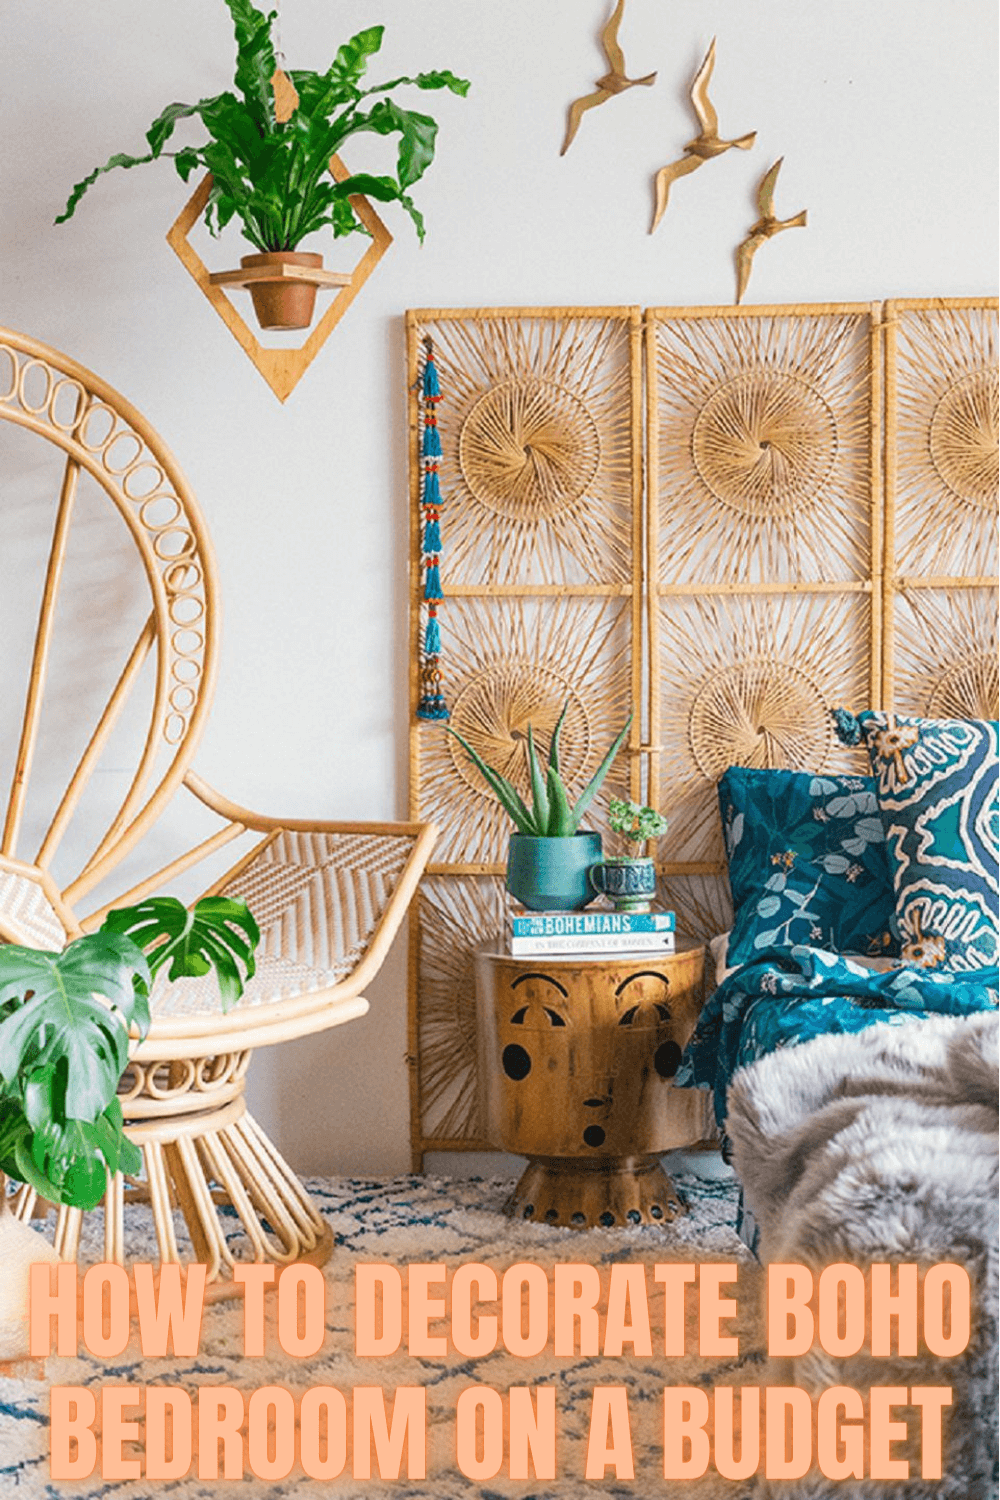 HOW TO DECORATE BOHO BEDROOM ON A BUDGET